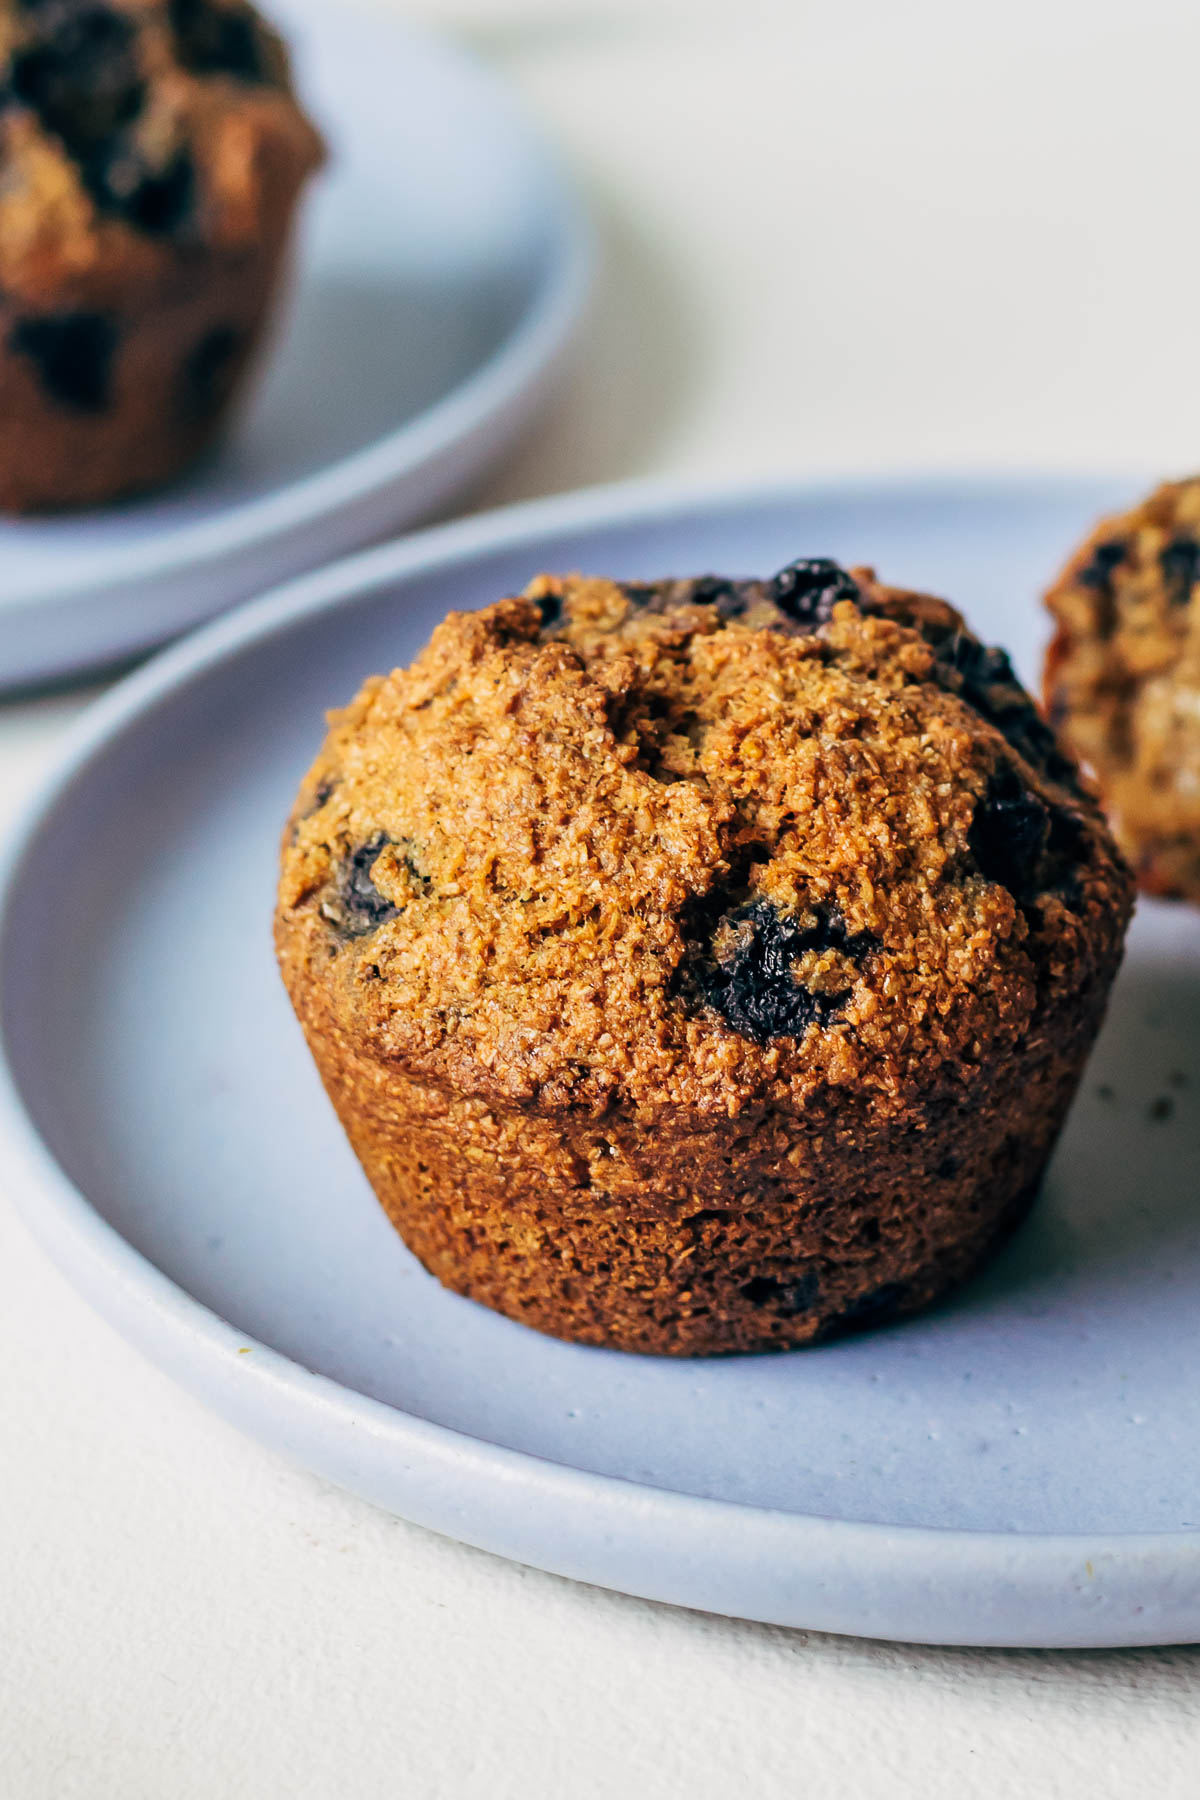 Close up of blueberry bran muffin on a plate.